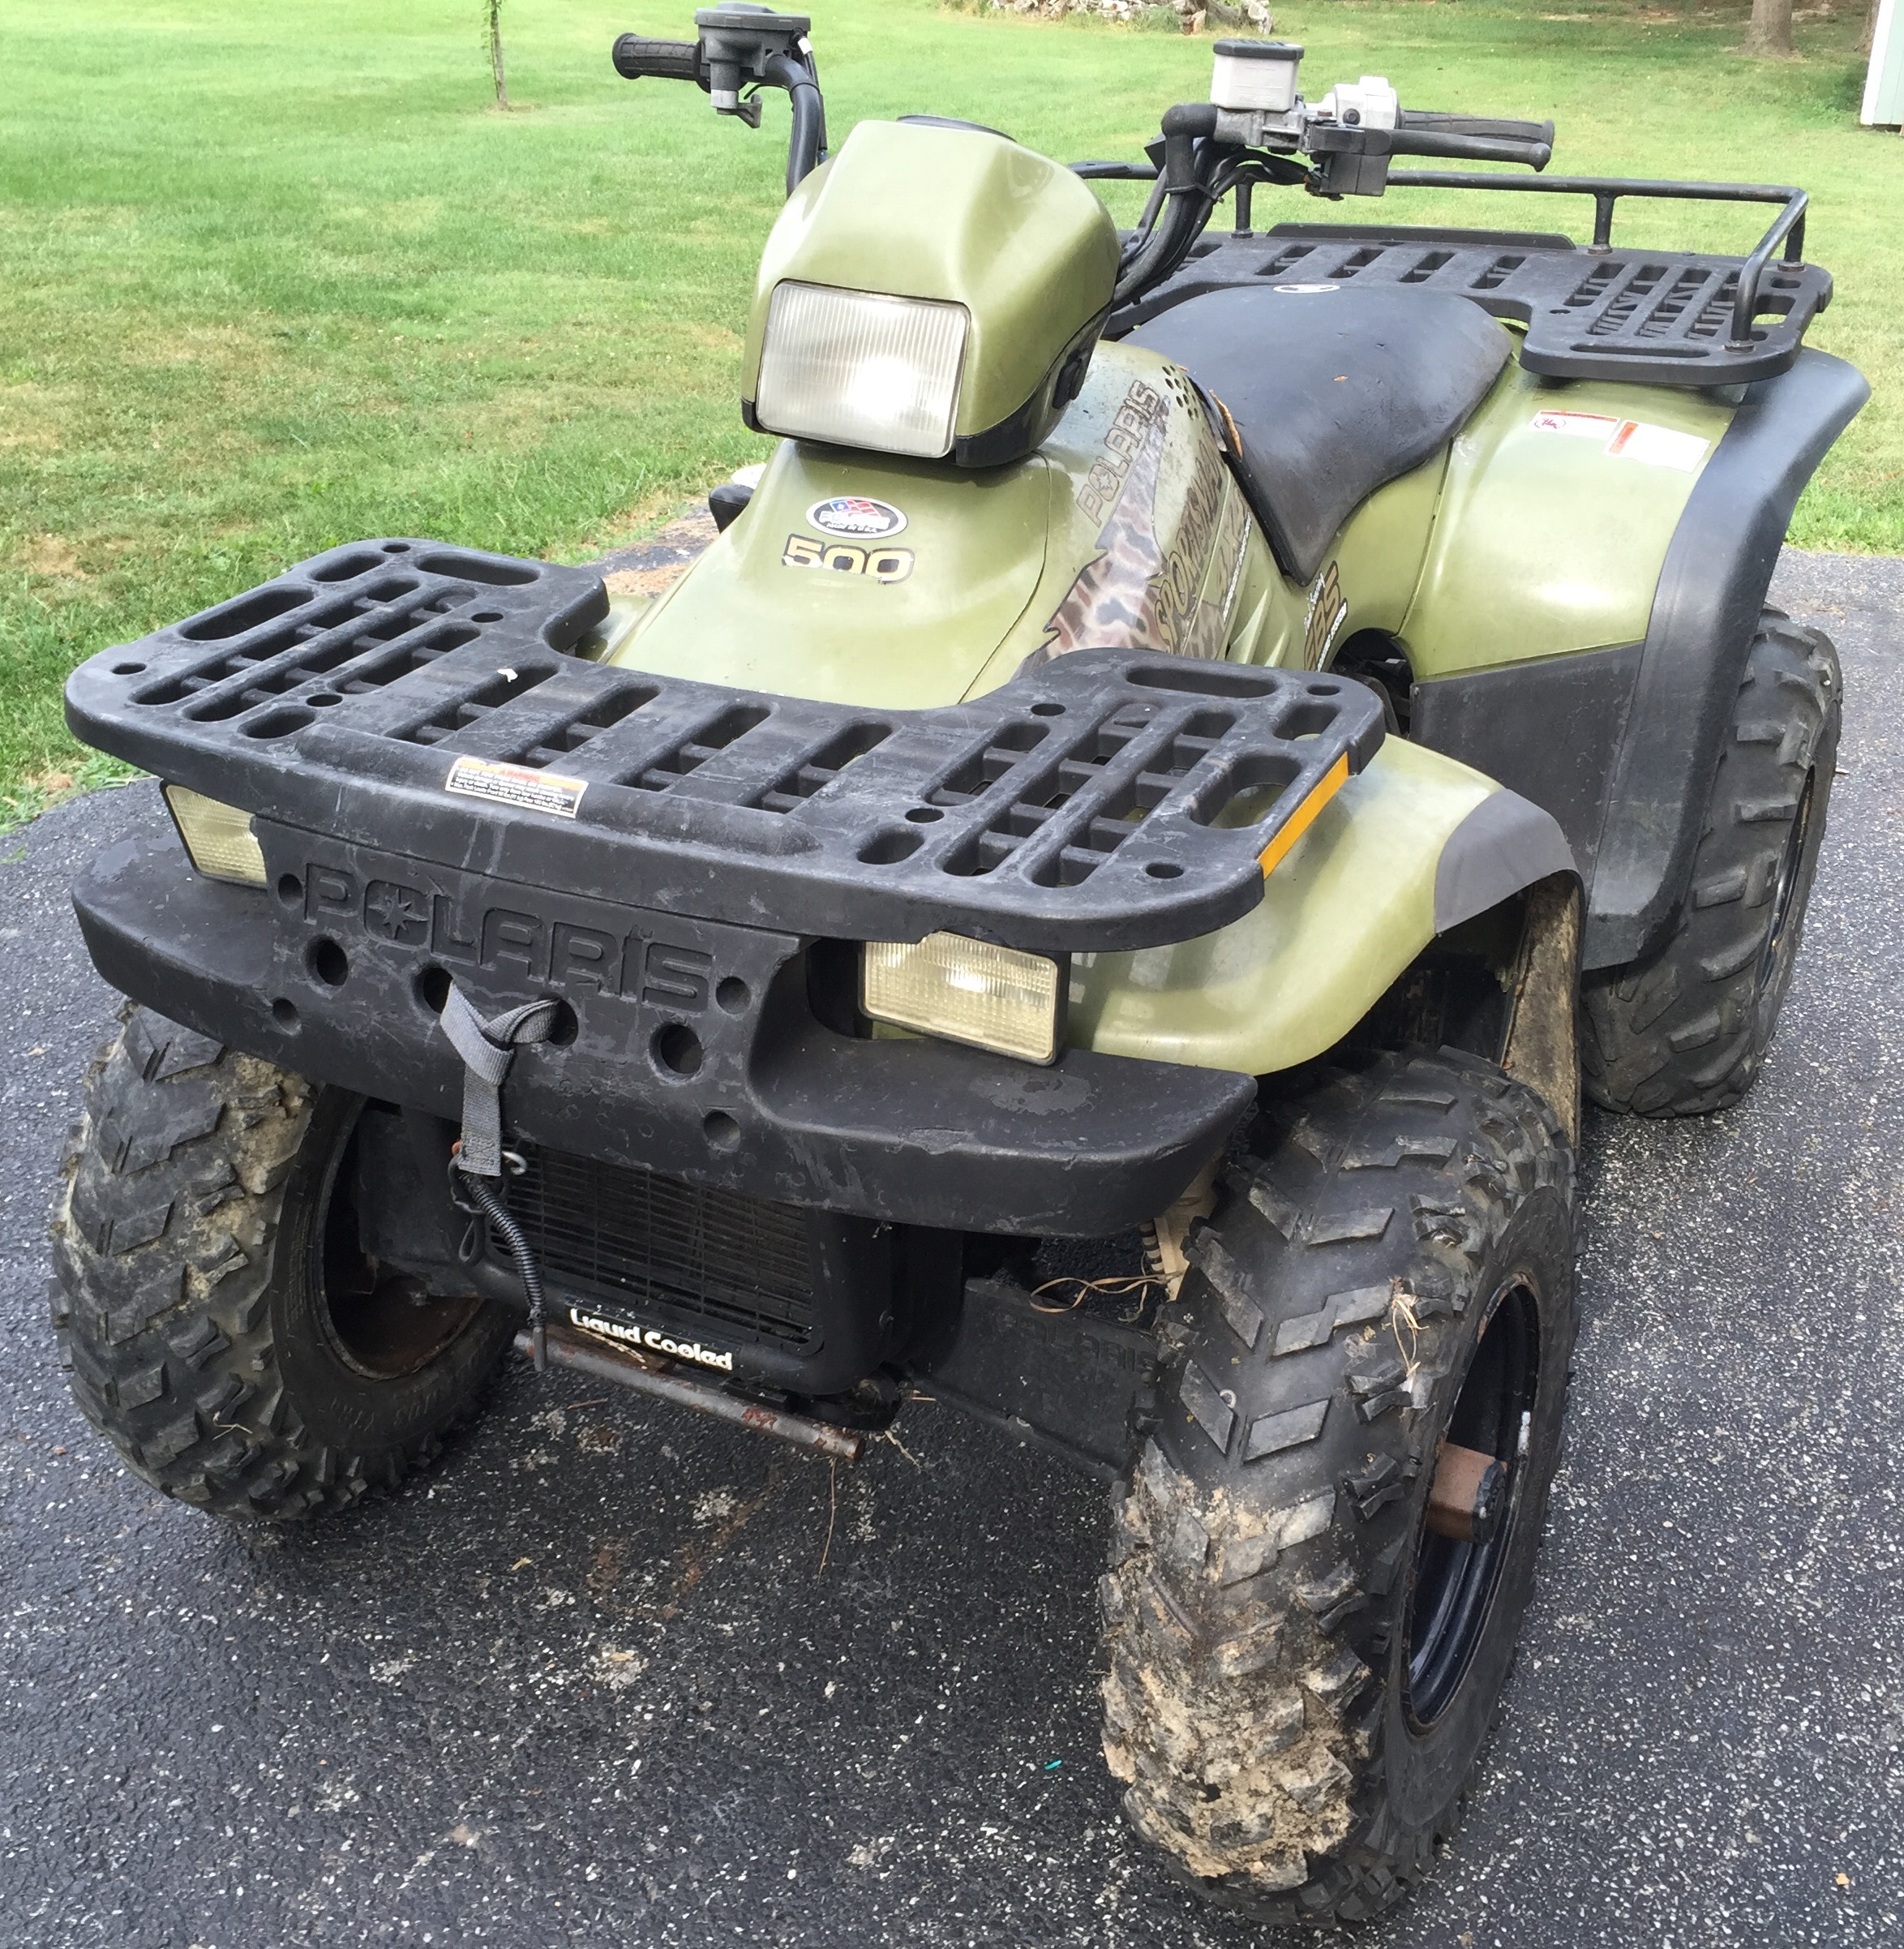 1997 polaris sportsman 500 h o pics specs and. Black Bedroom Furniture Sets. Home Design Ideas